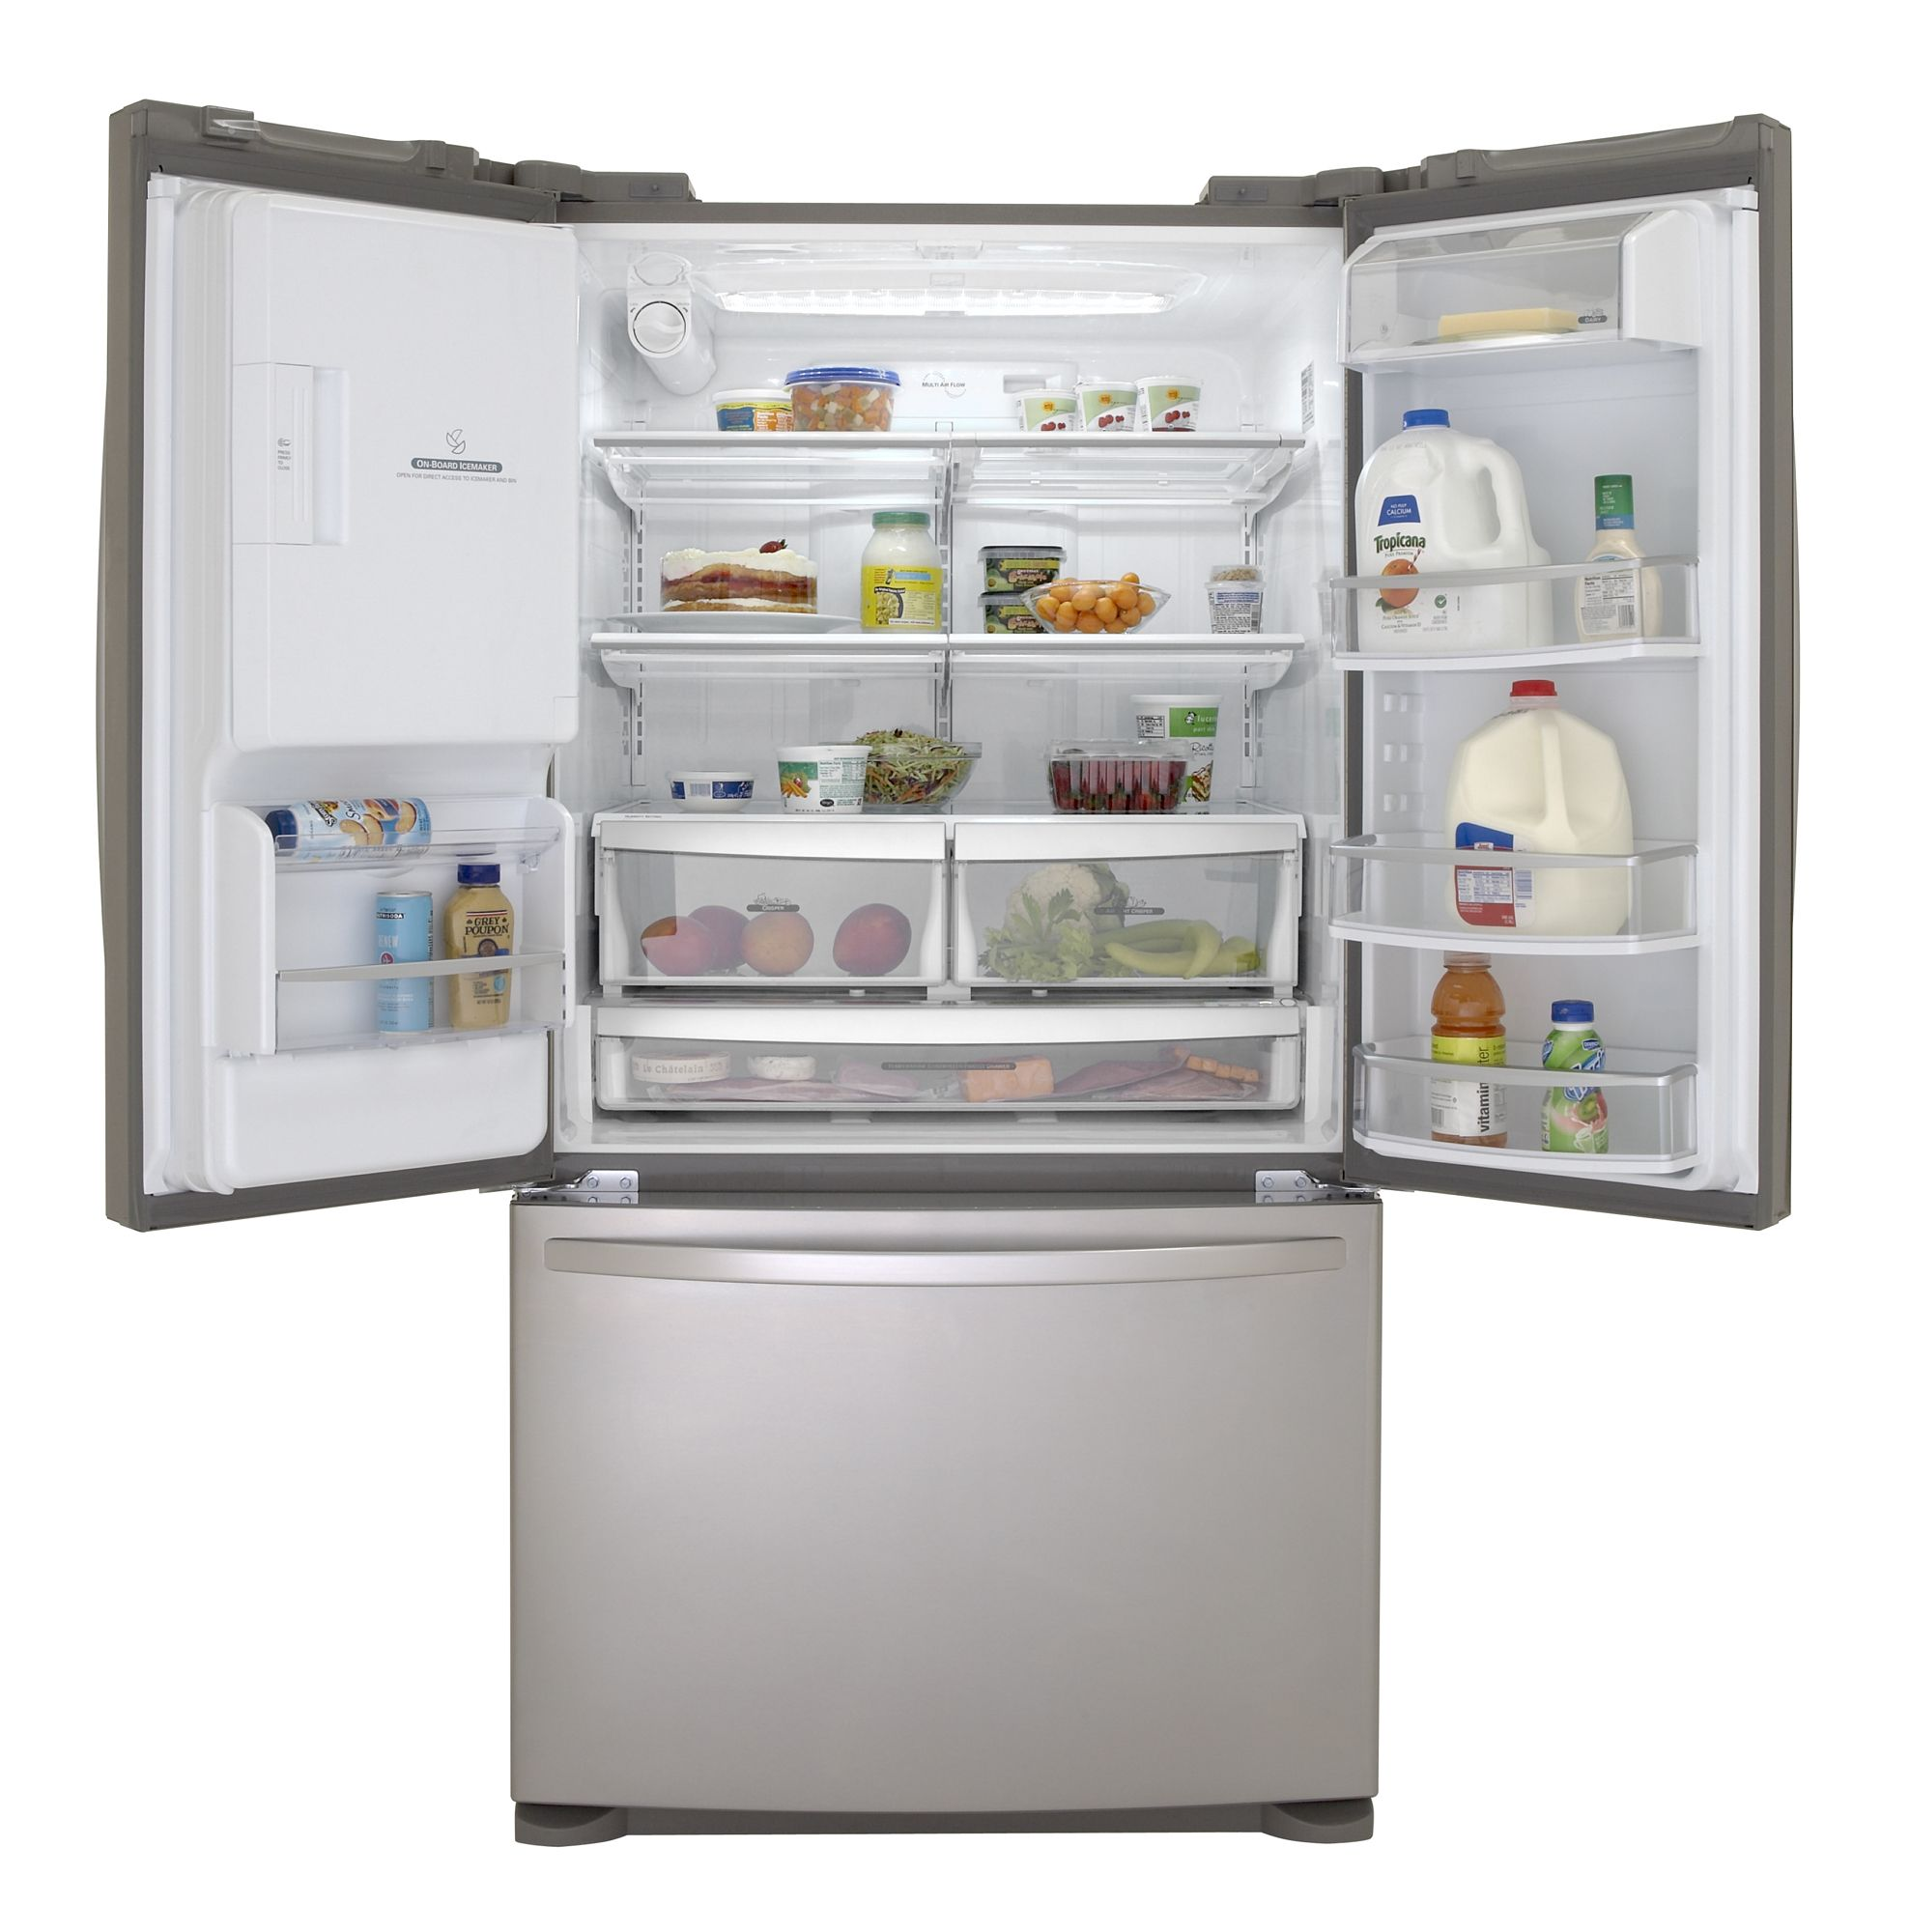 Kenmore Elite 27.6 cu. ft. French-Door Bottom Freezer Refrigerator (7978)